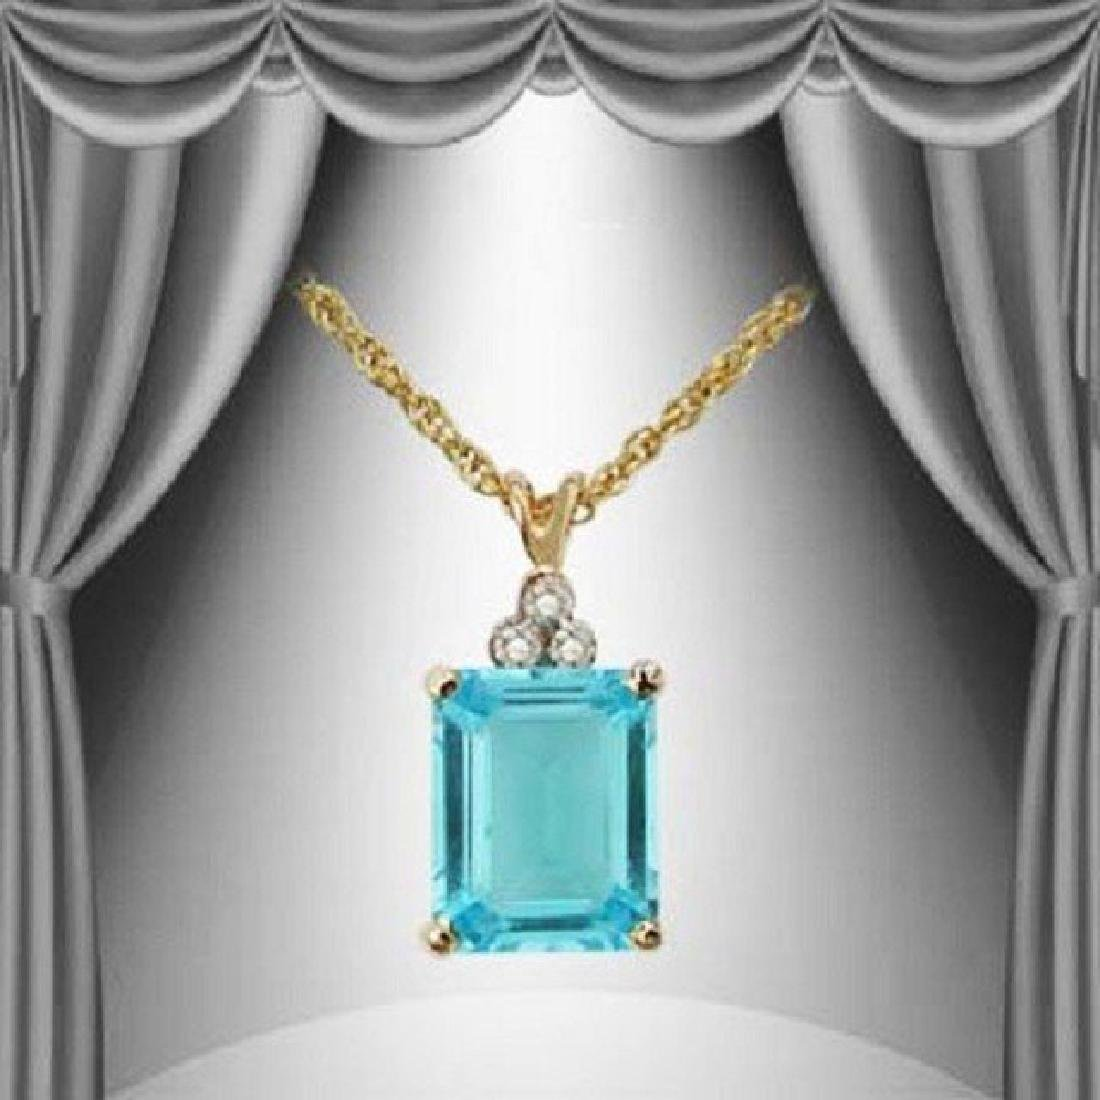 4.71 CT Blue Topaz & Diamond Fine Necklace $845